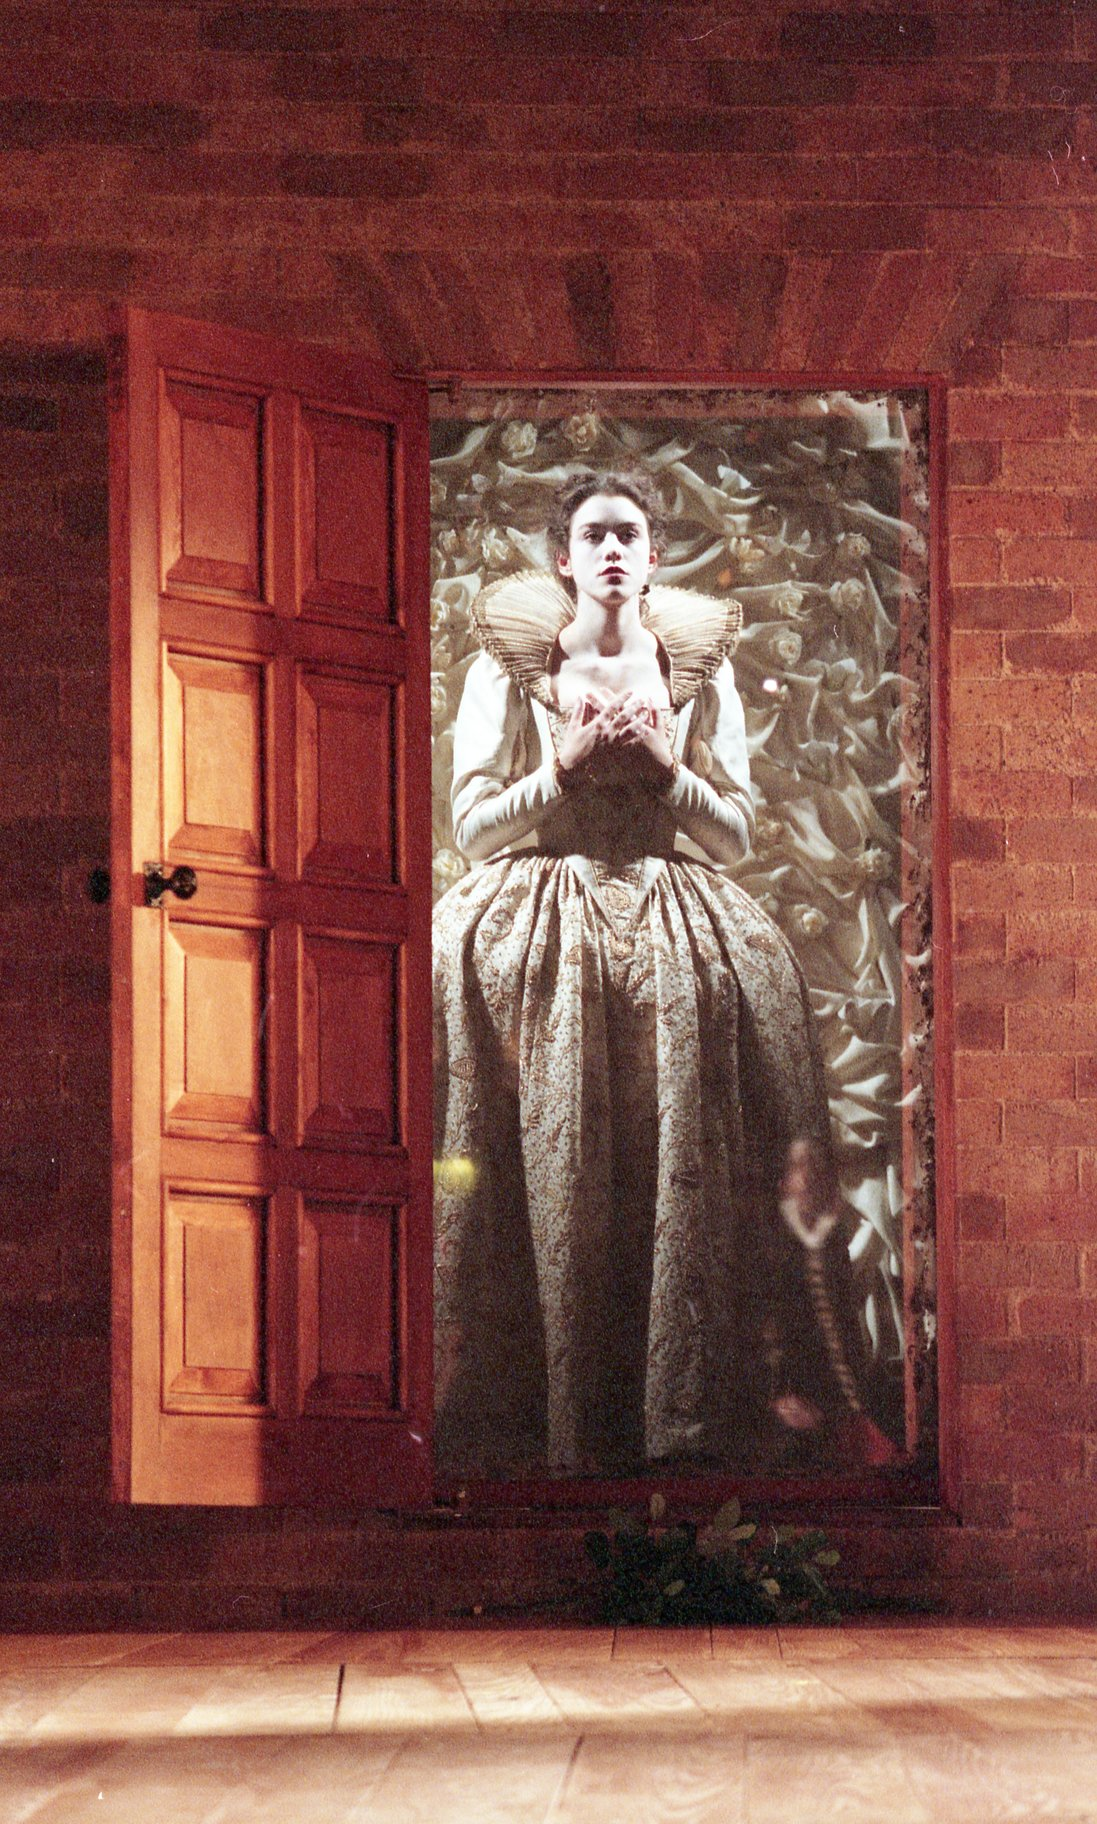 A woman in white lies behind a wooden door, much like a coffin.